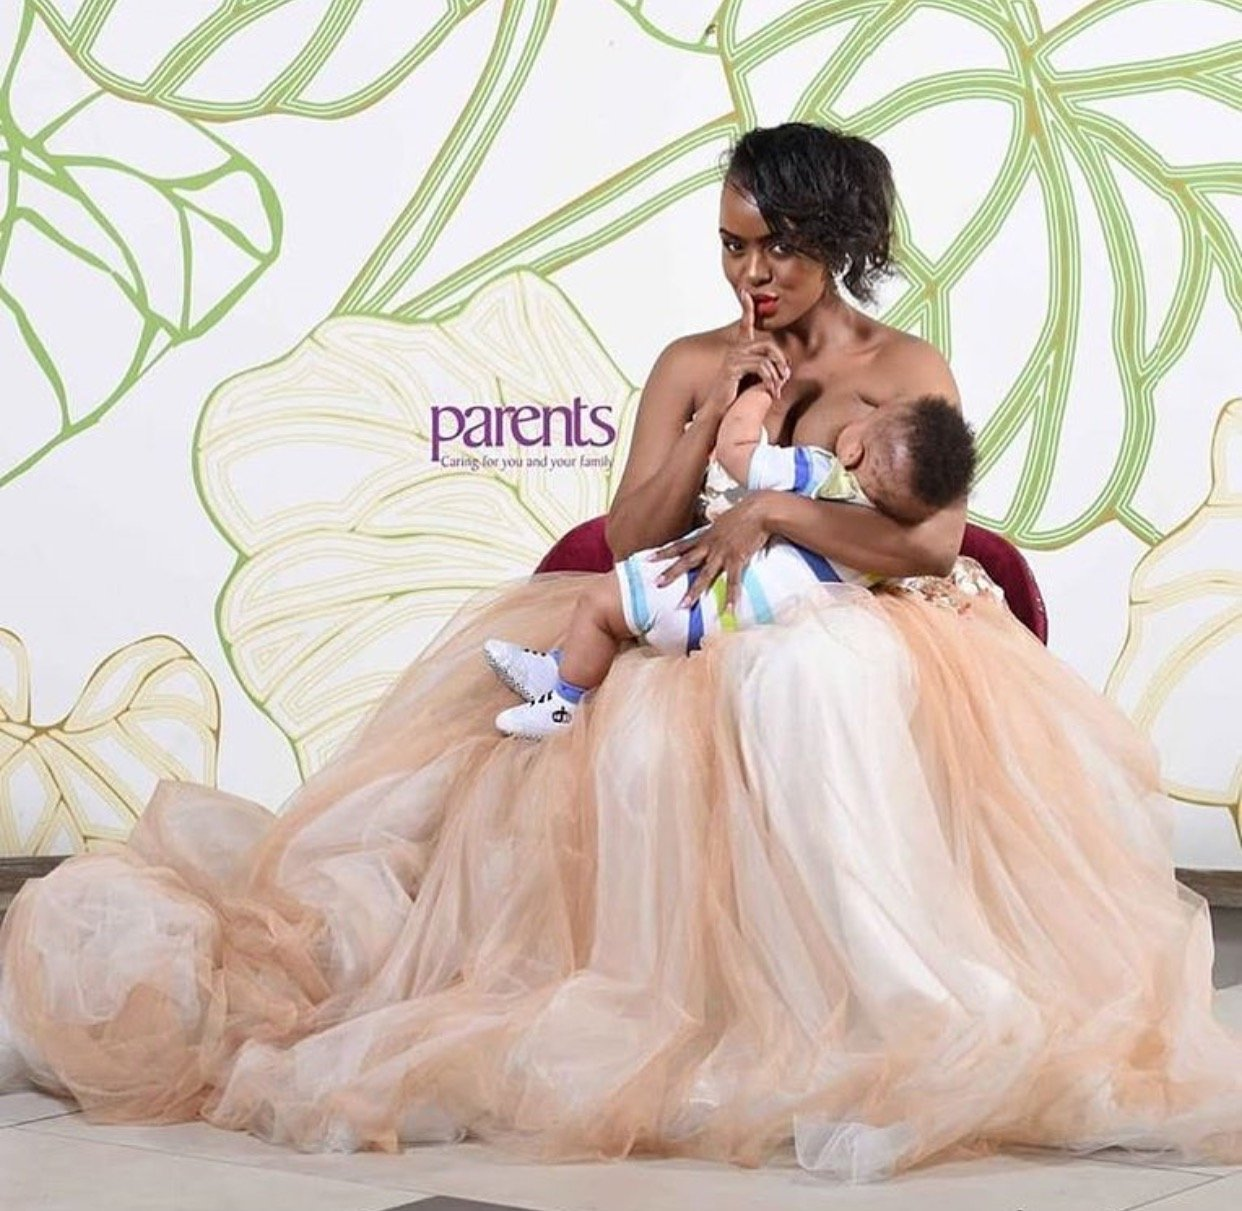 Avril: I have turned down endorsement deals because I don't want companies to use my baby